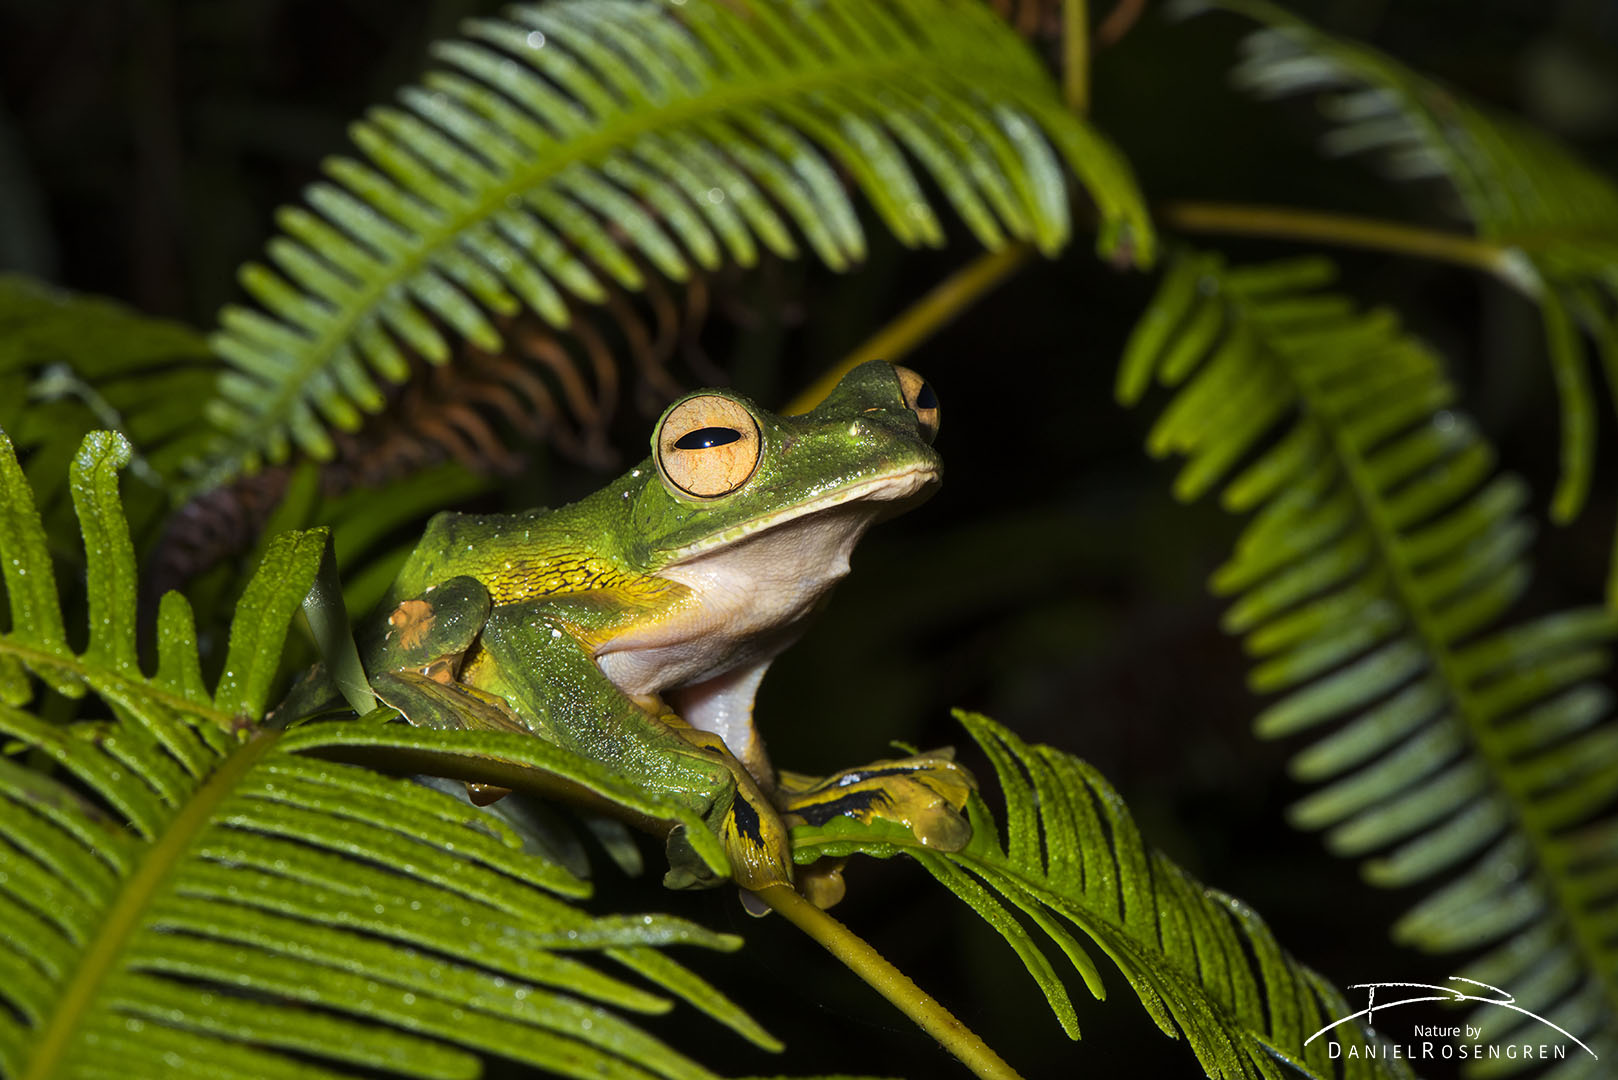 The Flying Frog can't actually fly, but can indeed glide quite well using the webbing between their toes. © Daniel Rosengren